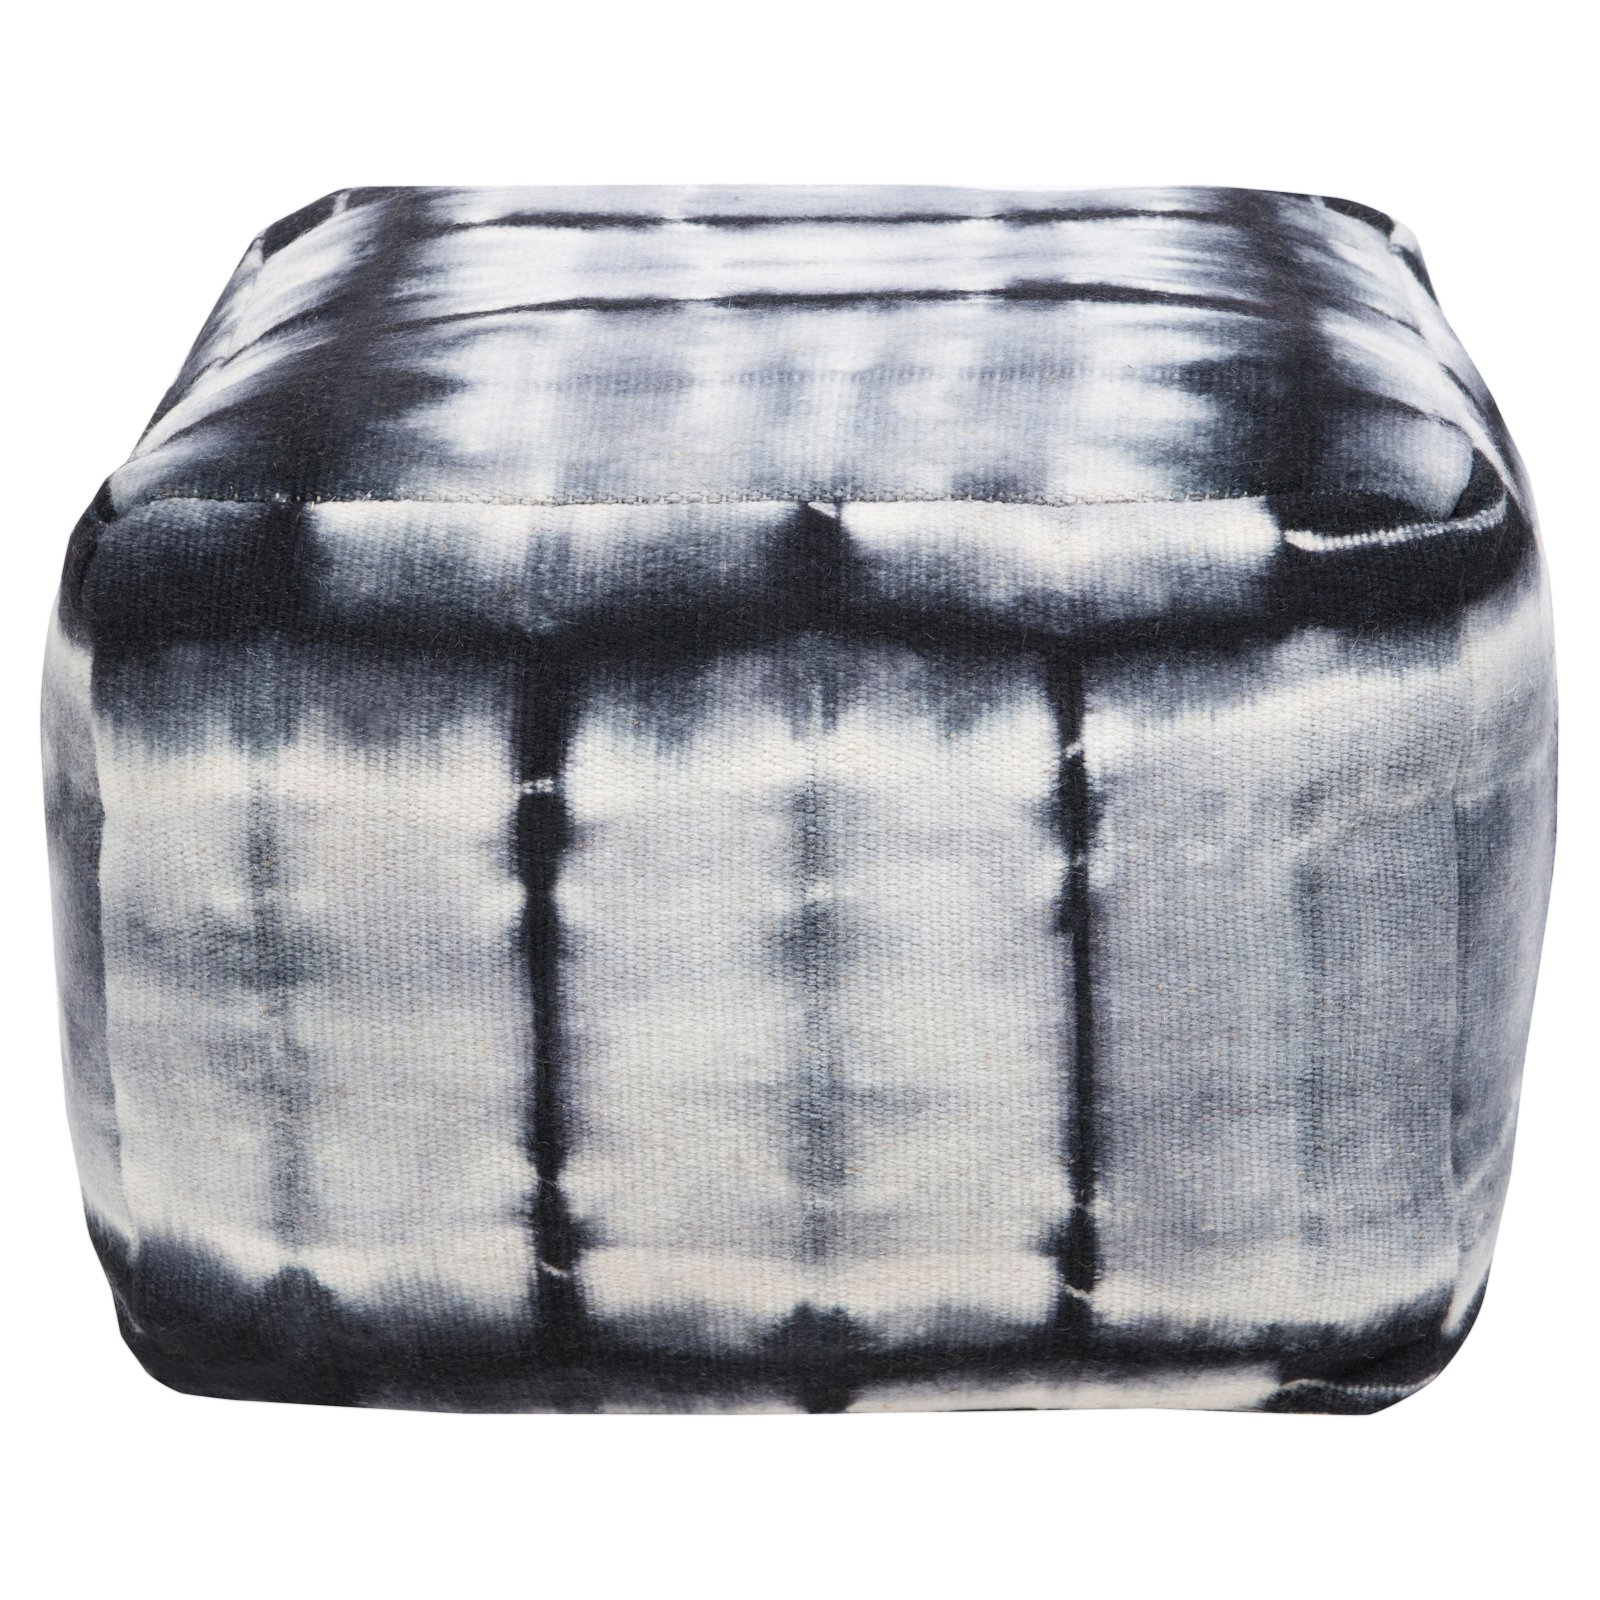 Surya 16 in. Cube Wool Pouf by Surya